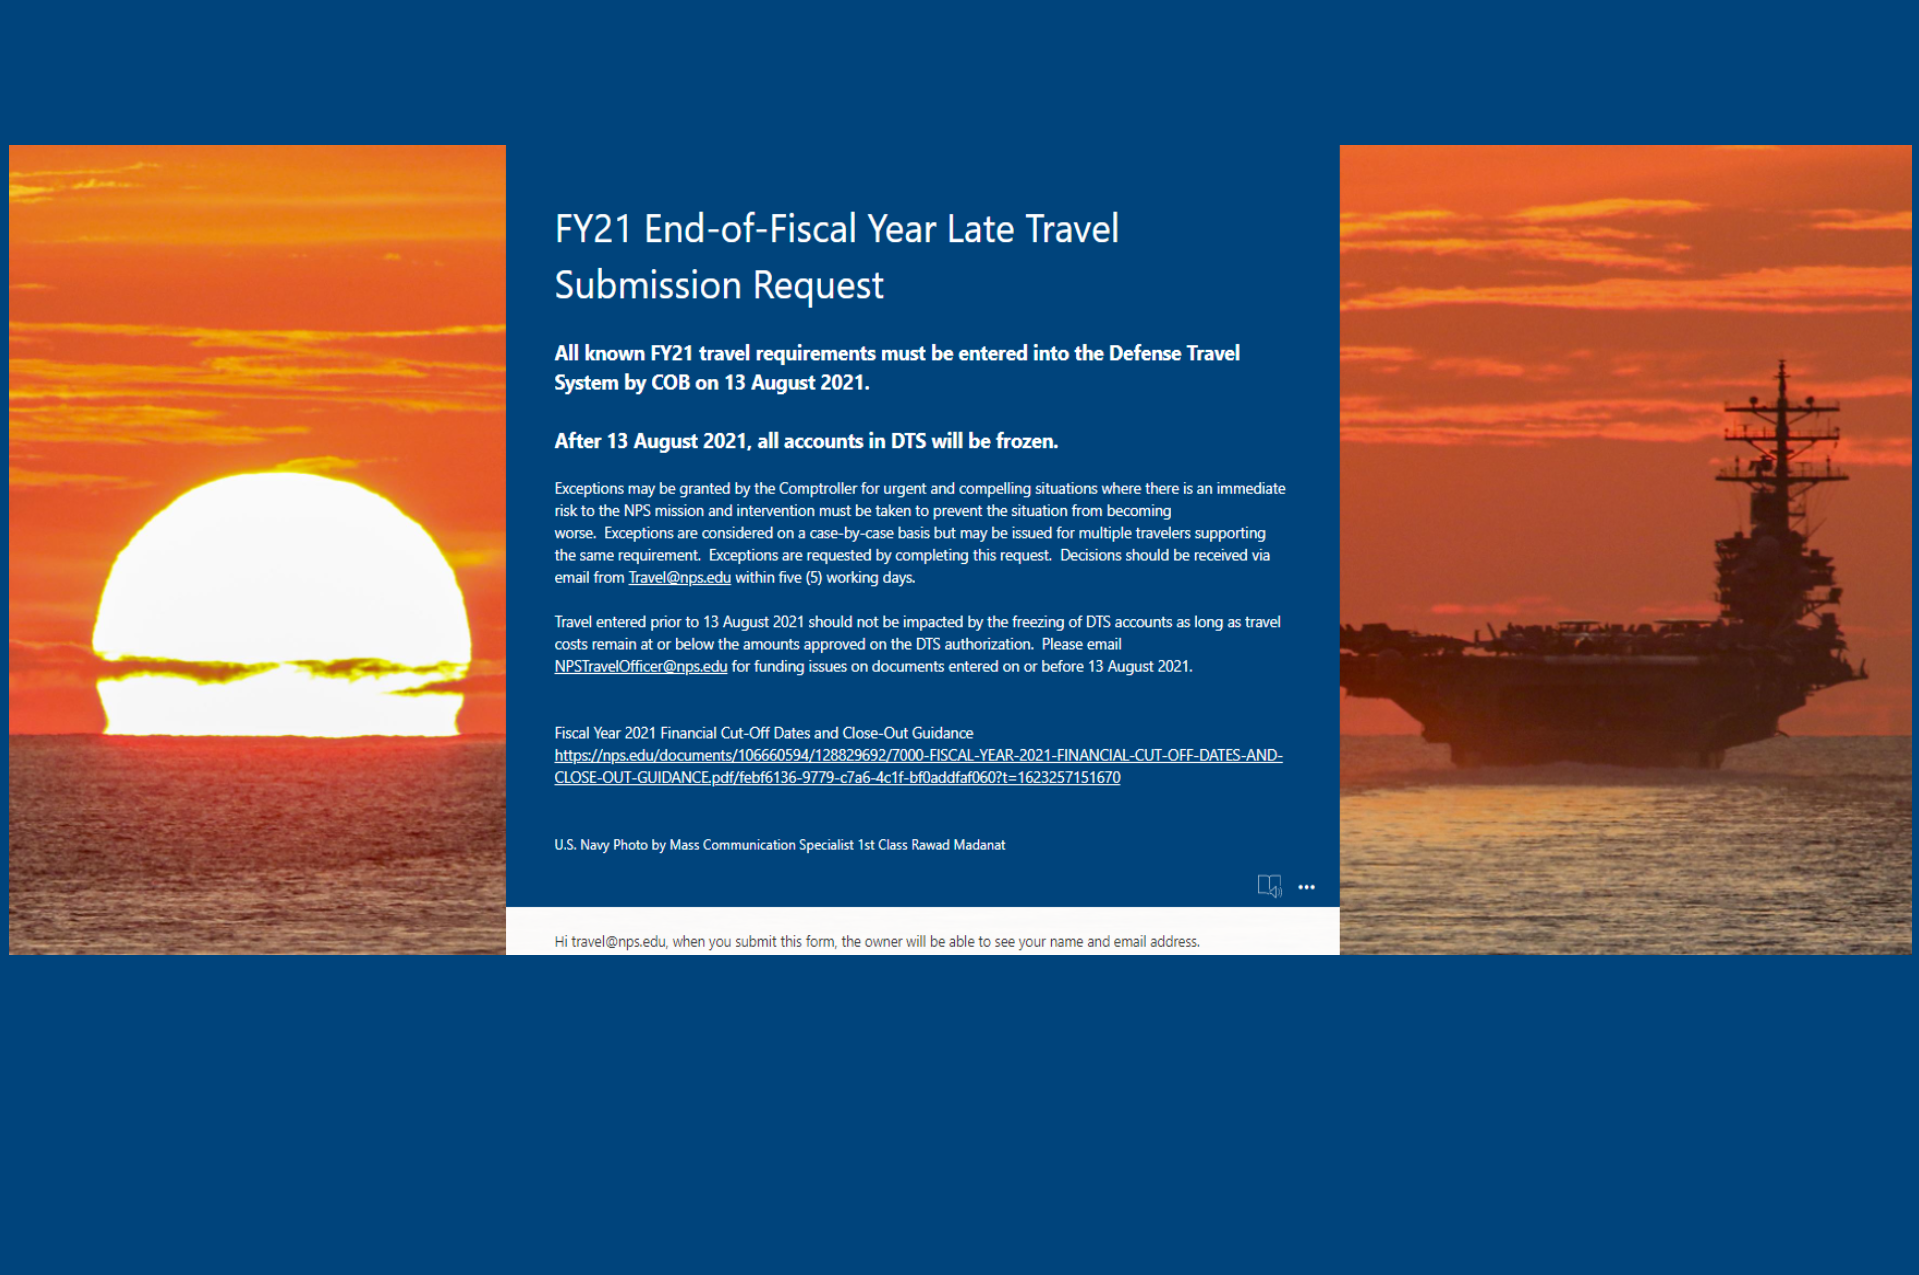 FY21 End-of-Fiscal Year Travel Cut-off 13 August